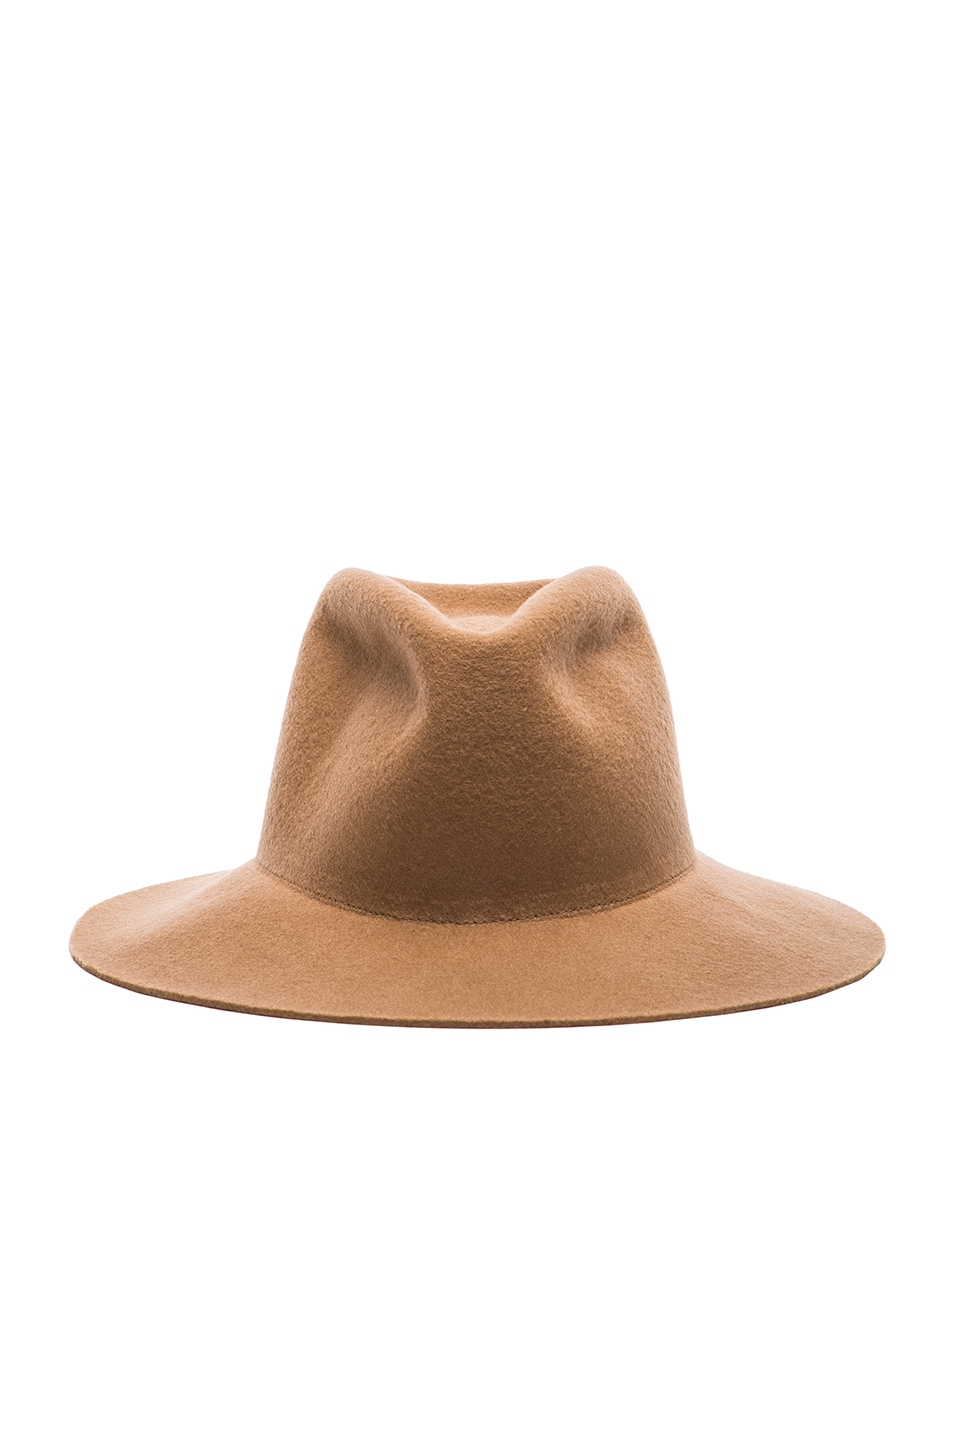 Image 1 of Clyde Short Brim Pinch Hat in Camel